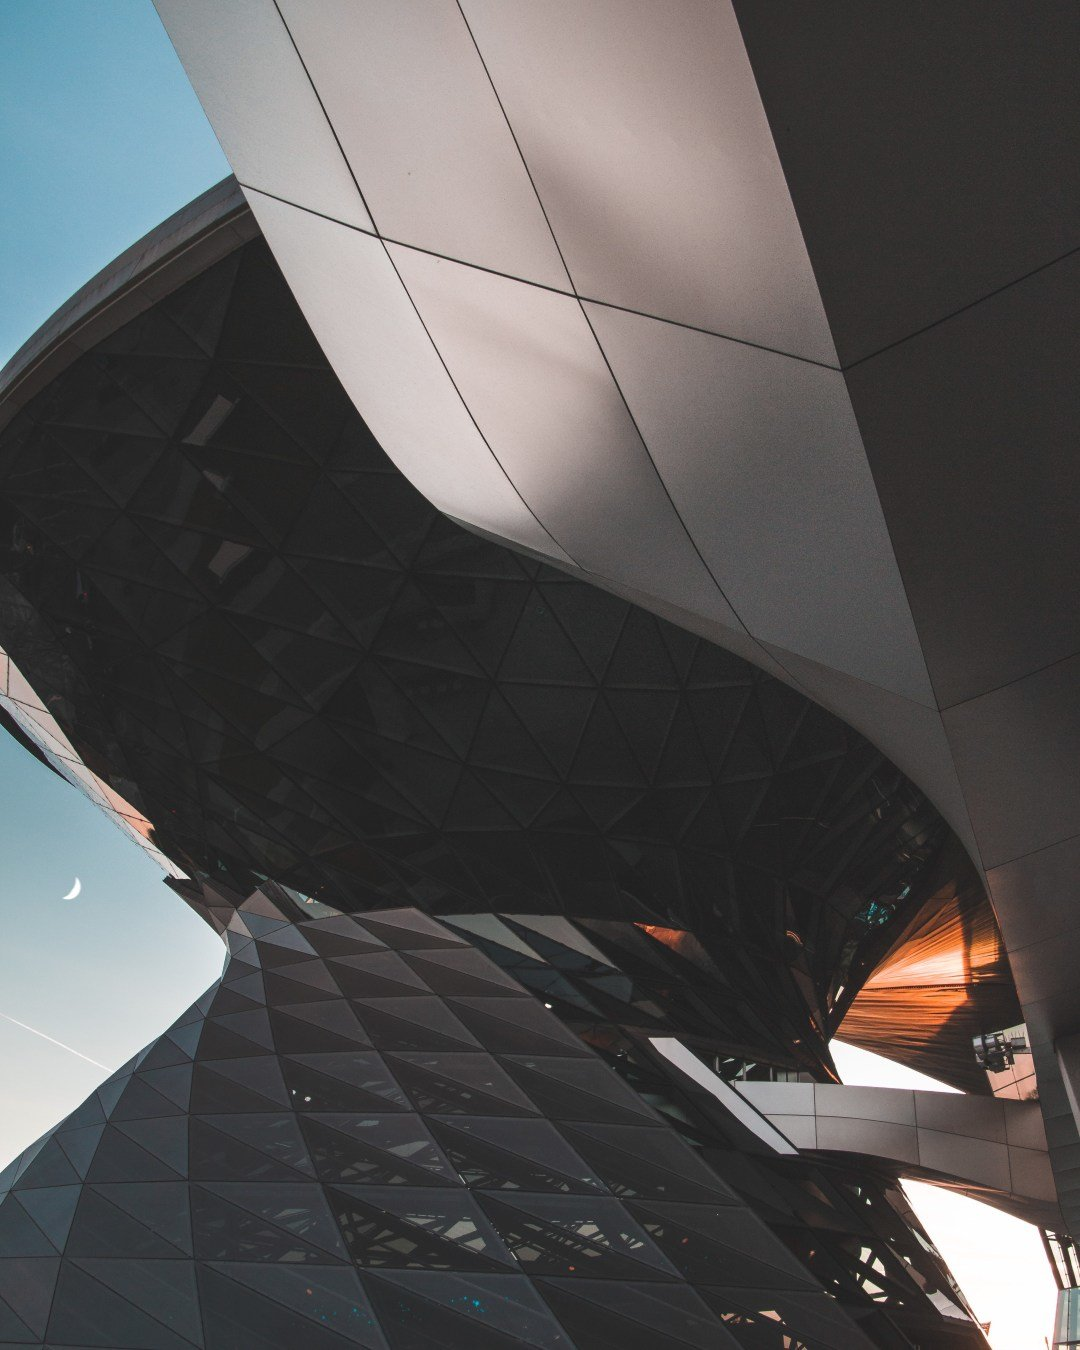 Latest 27 Bmw Pictures Download Free Images On Unsplash Free Download